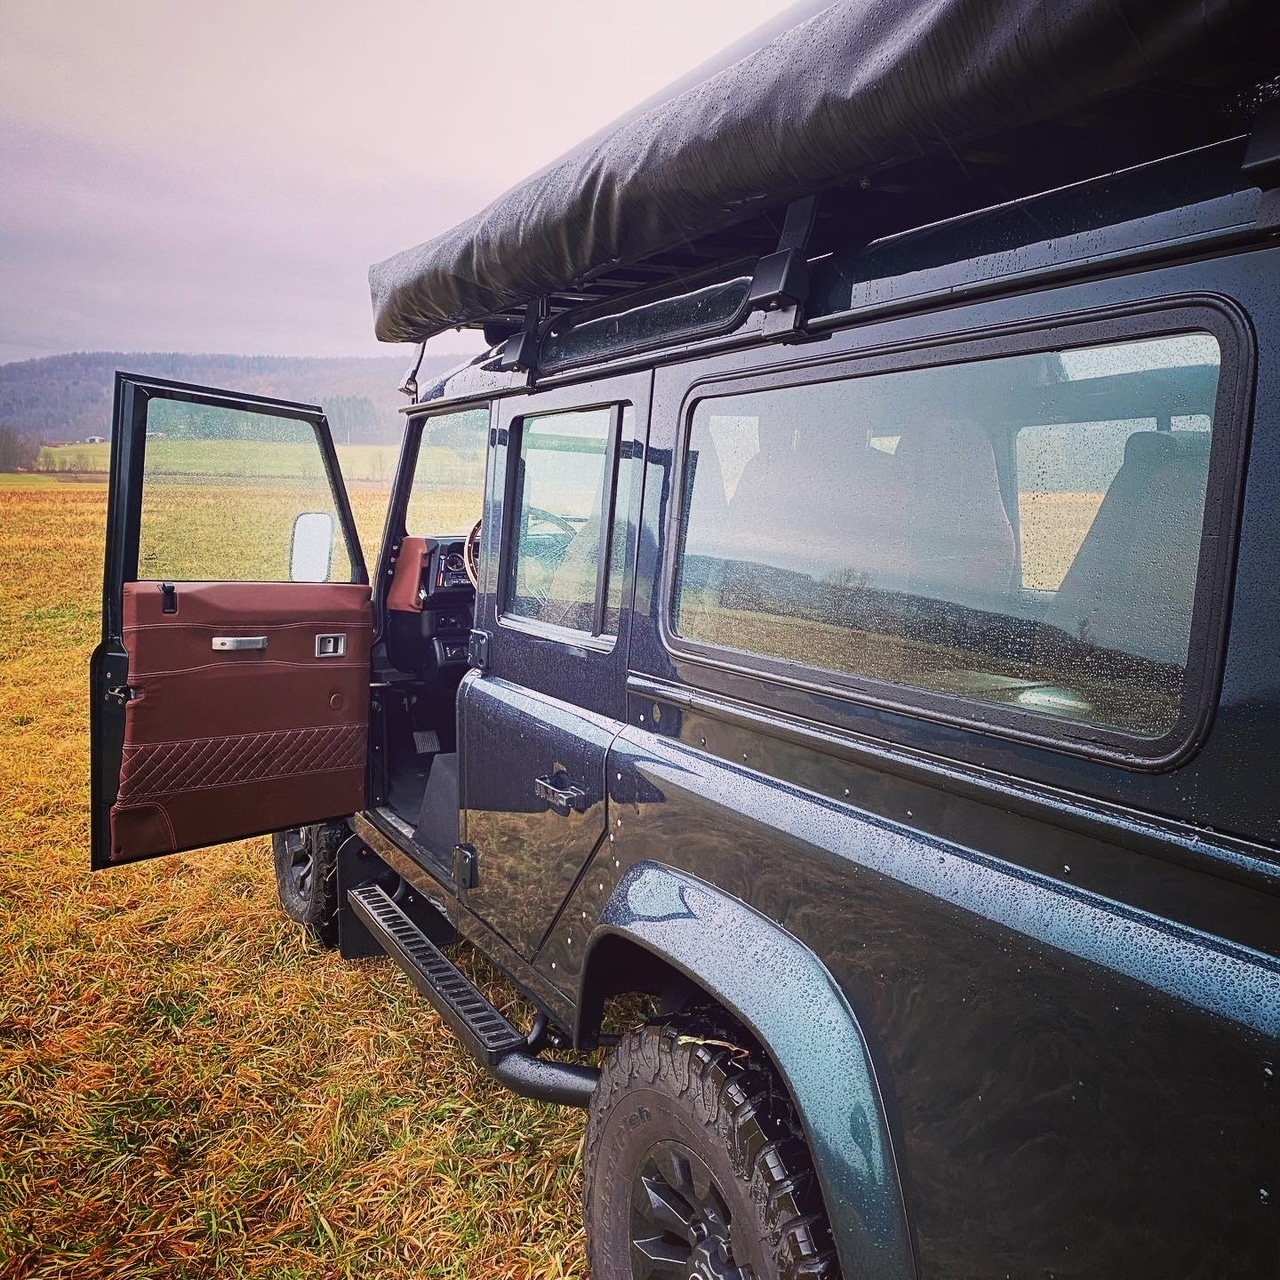 Driving a Defender is much like driving a Mercedes G Wagon or a Jeep except the Defender feels more stable. Send this image to a friend and tell them you want to visit the Helderburg Farm to see a Defender in person. Tent and Roof rack not included.